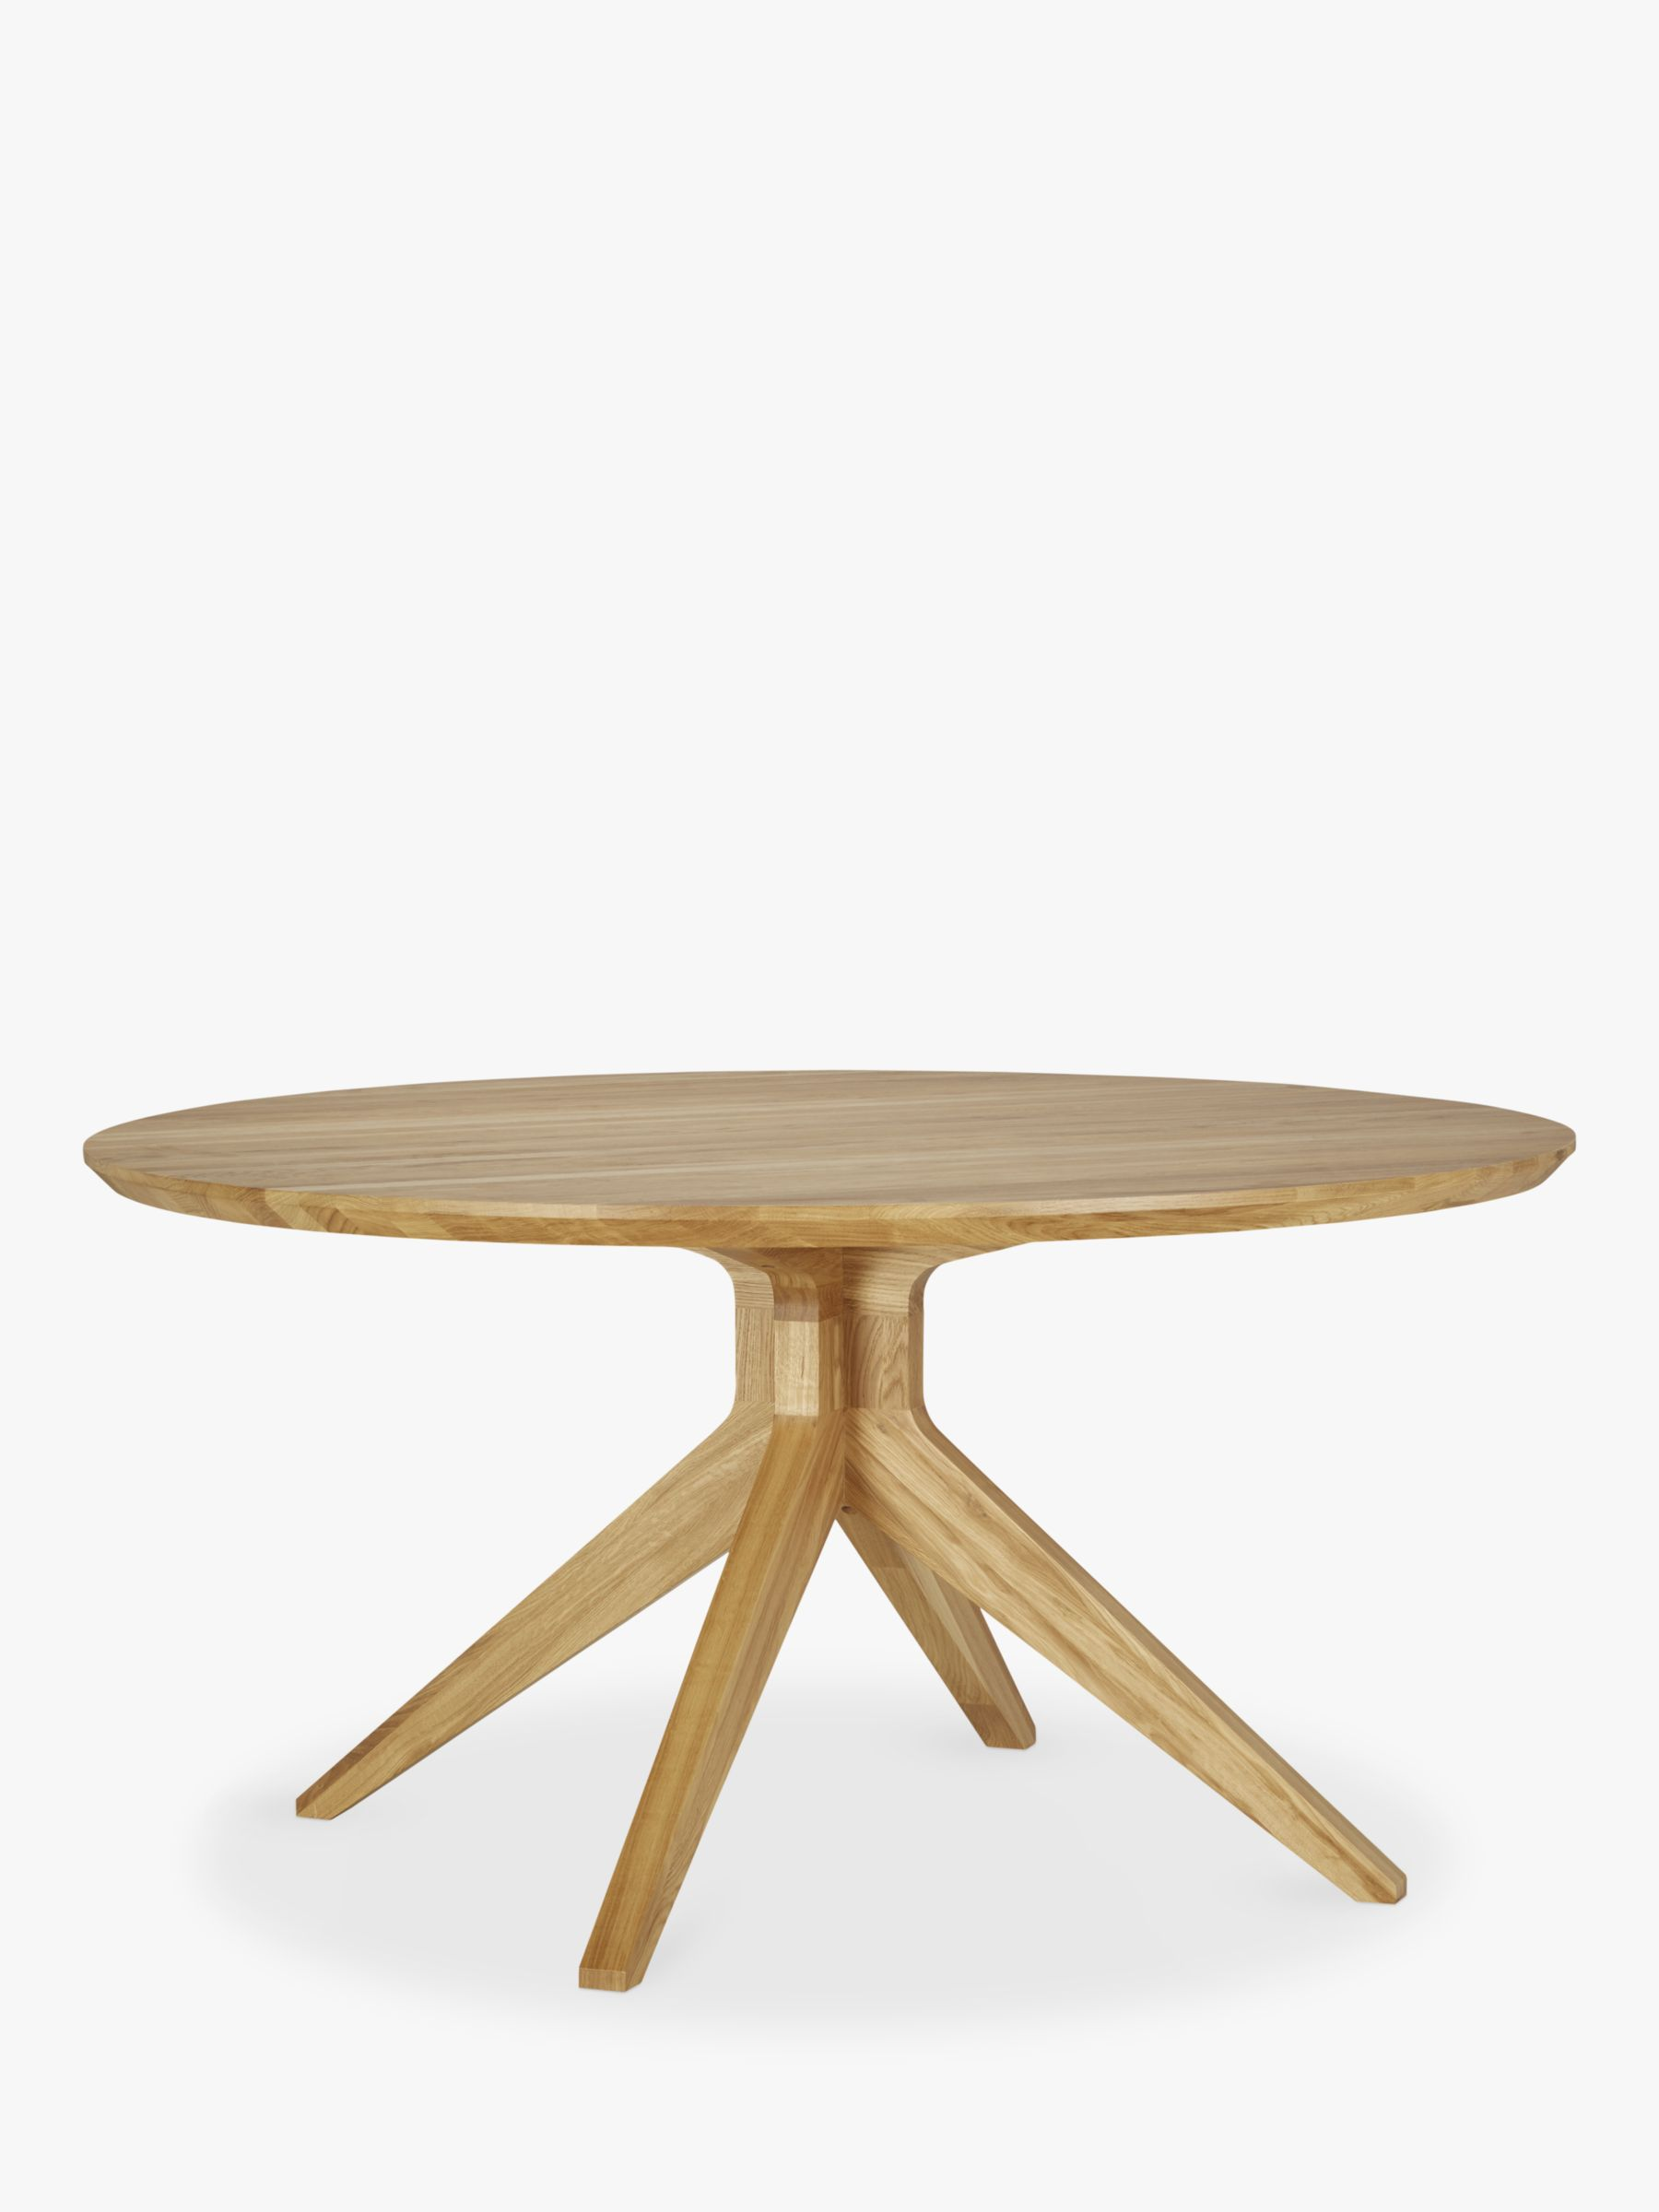 Case Matthew Hilton for Case Cross 6-Seater Round Dining Table, Oak